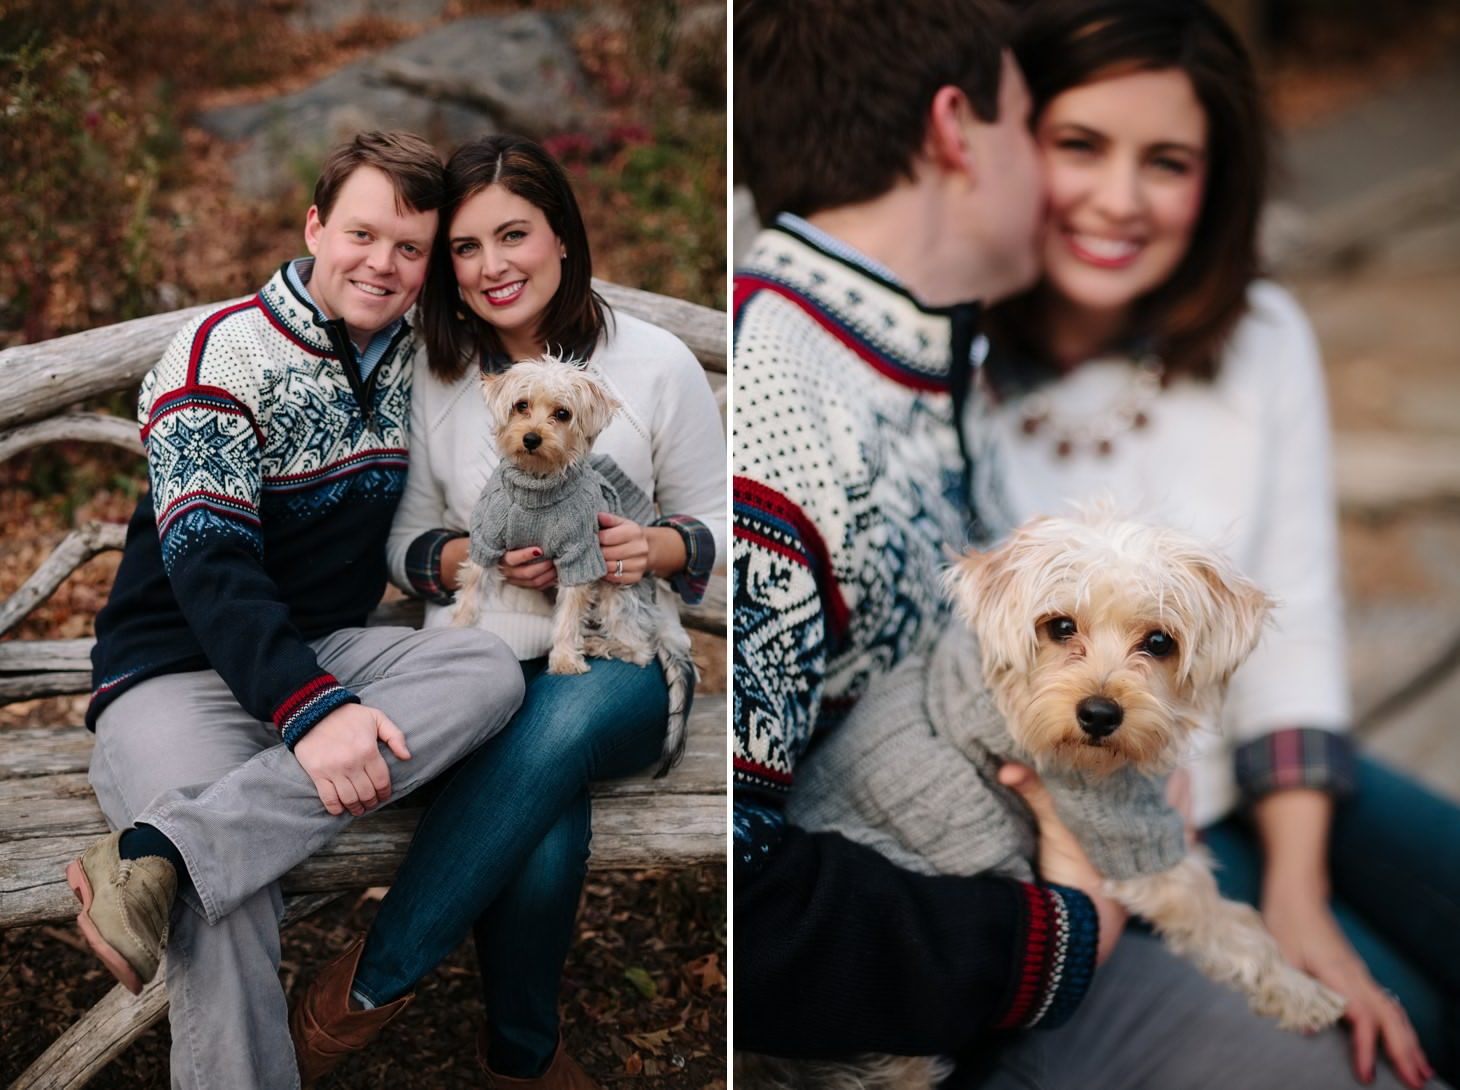 019-nyc-wedding-photographer-puppy-holiday-mini-session-fall-central-park.jpg